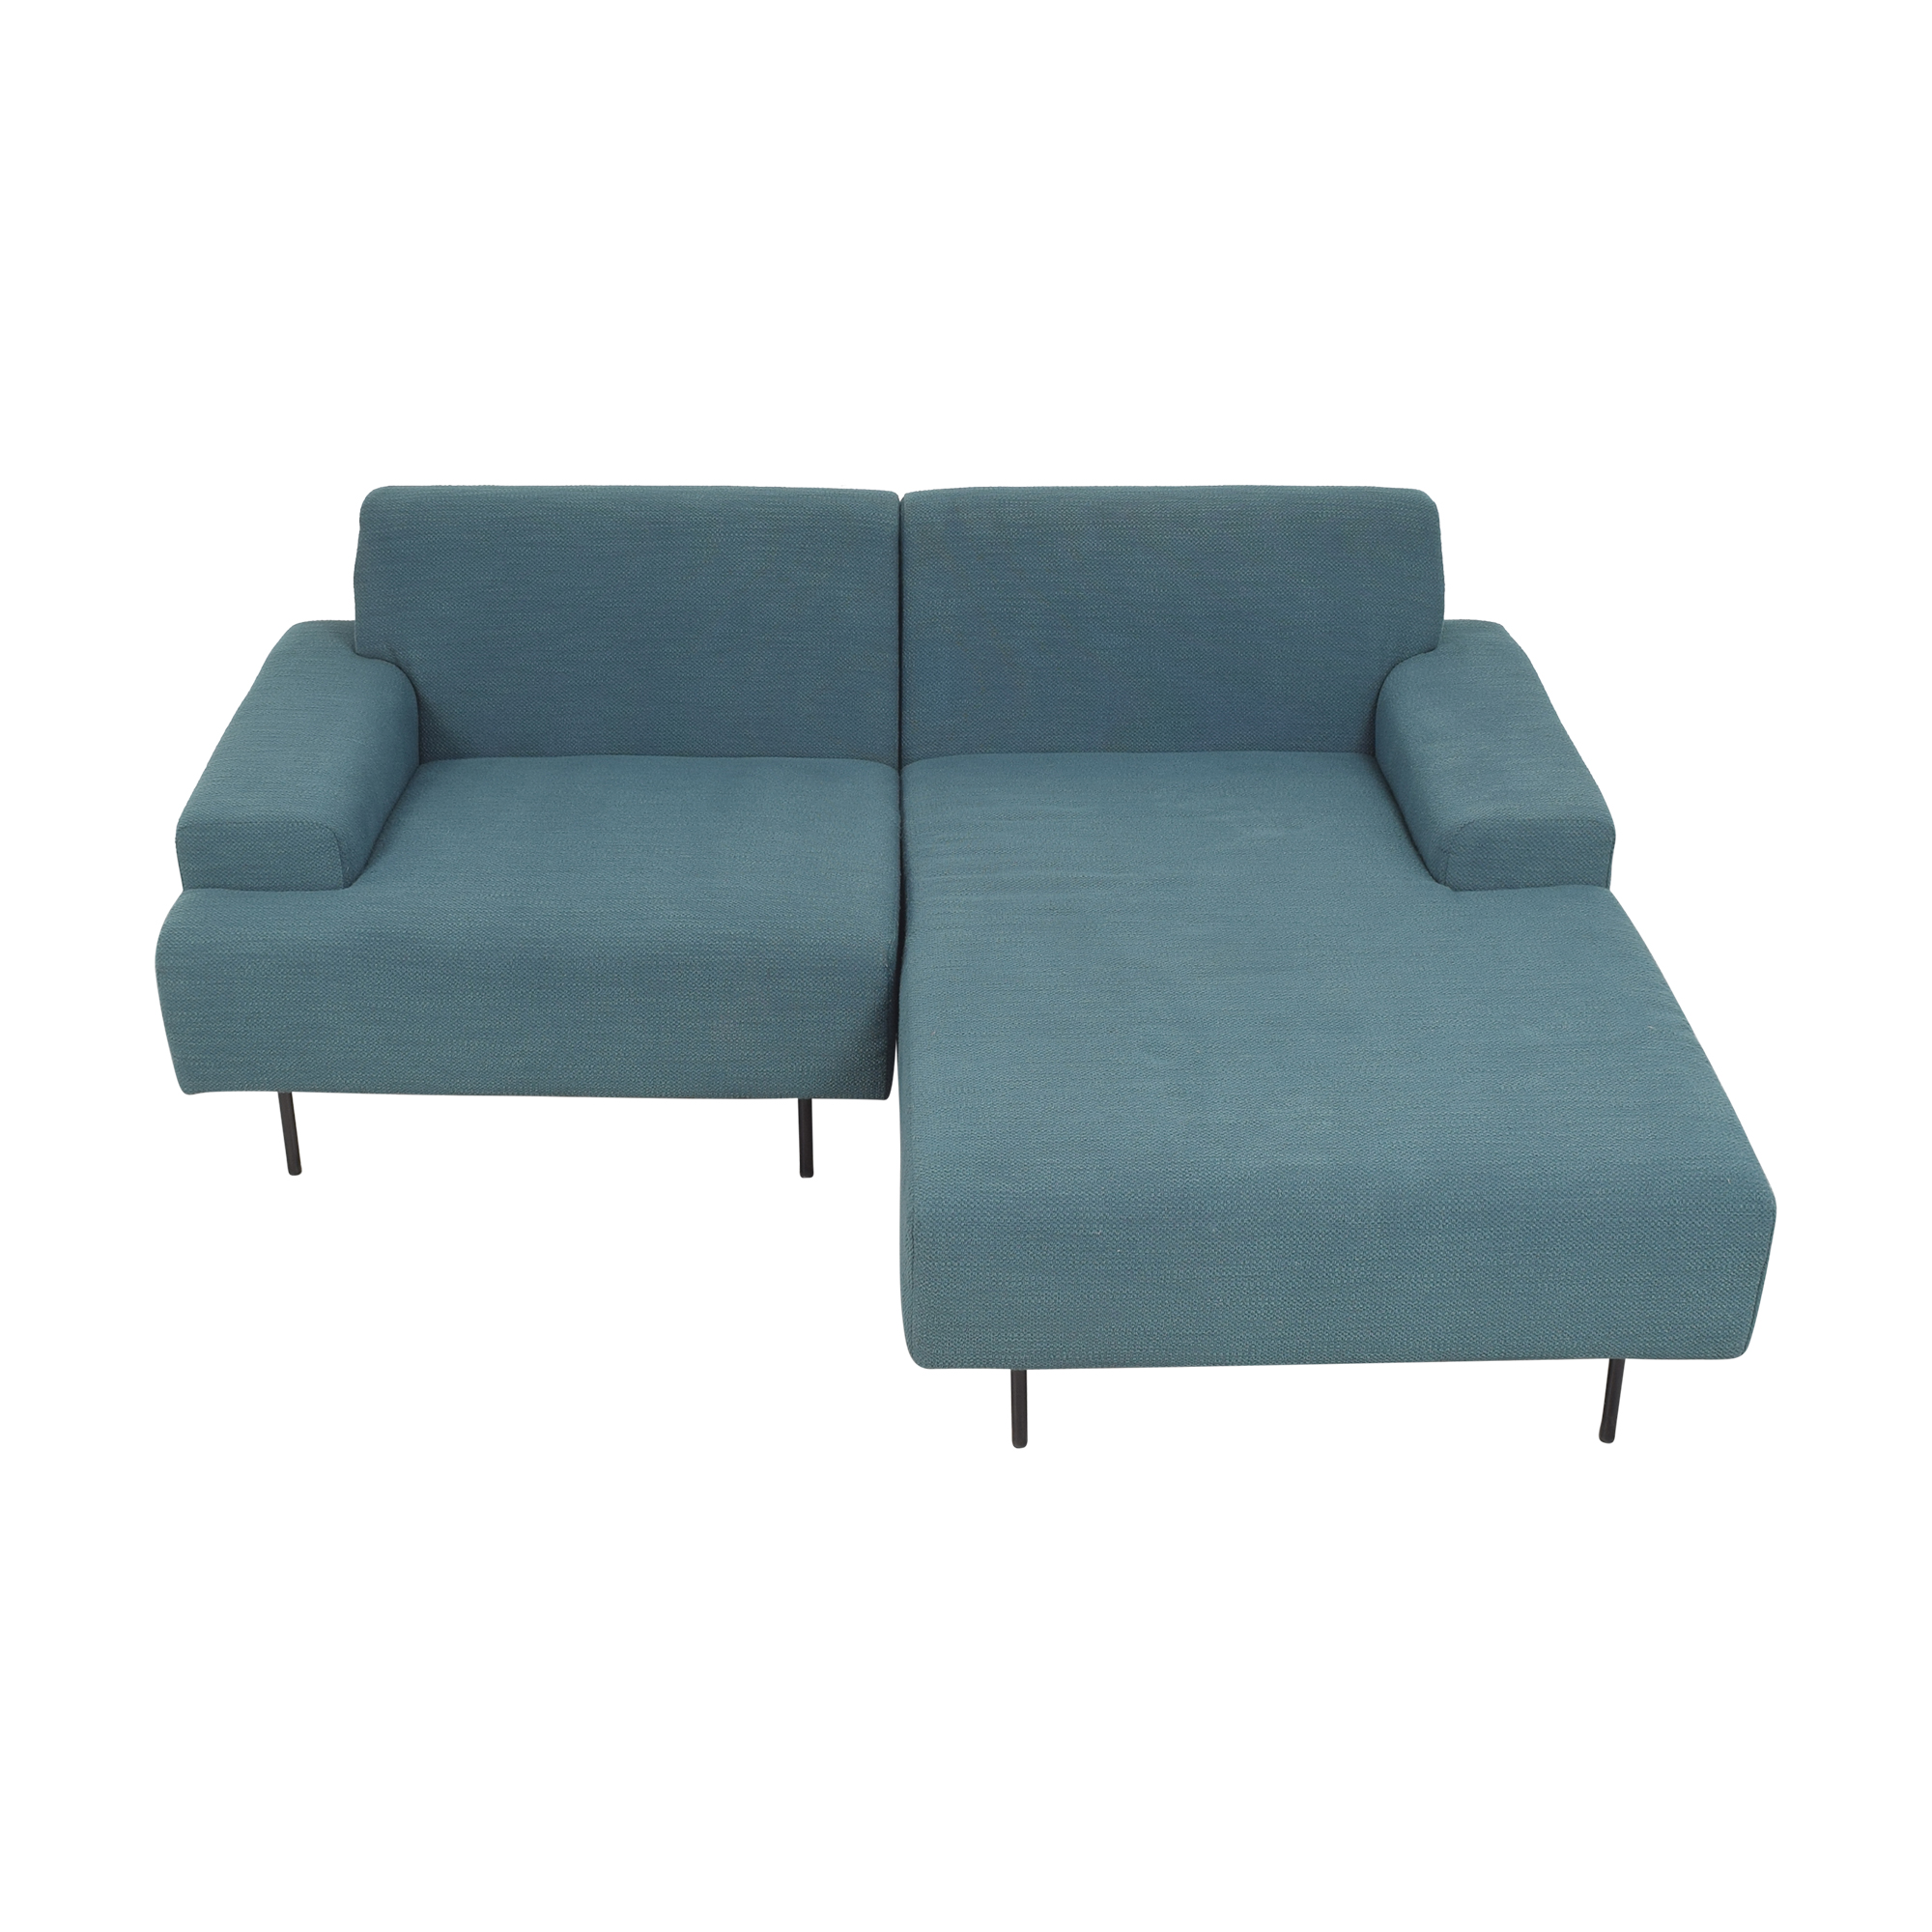 West Elm West Elm Beckham Two Piece Chaise Sectional Sofa for sale